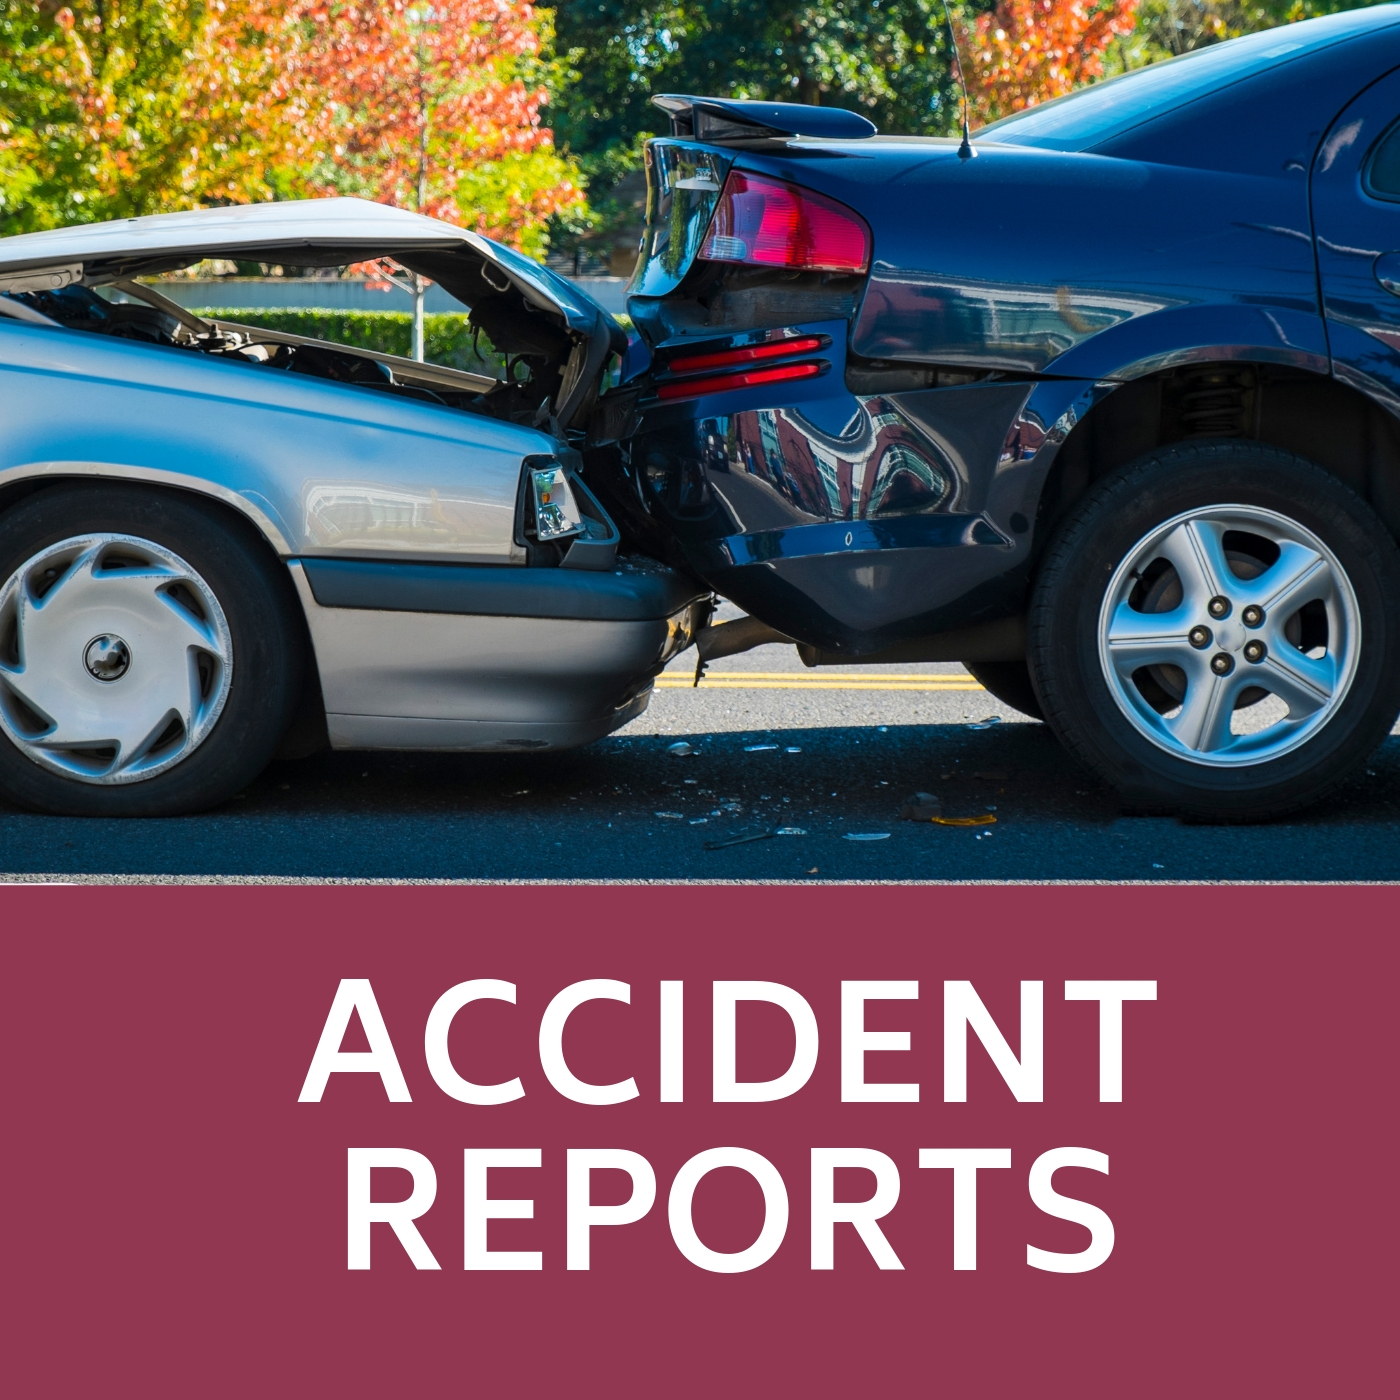 Car accident that links tohttps://policereports.lexisnexis.com/